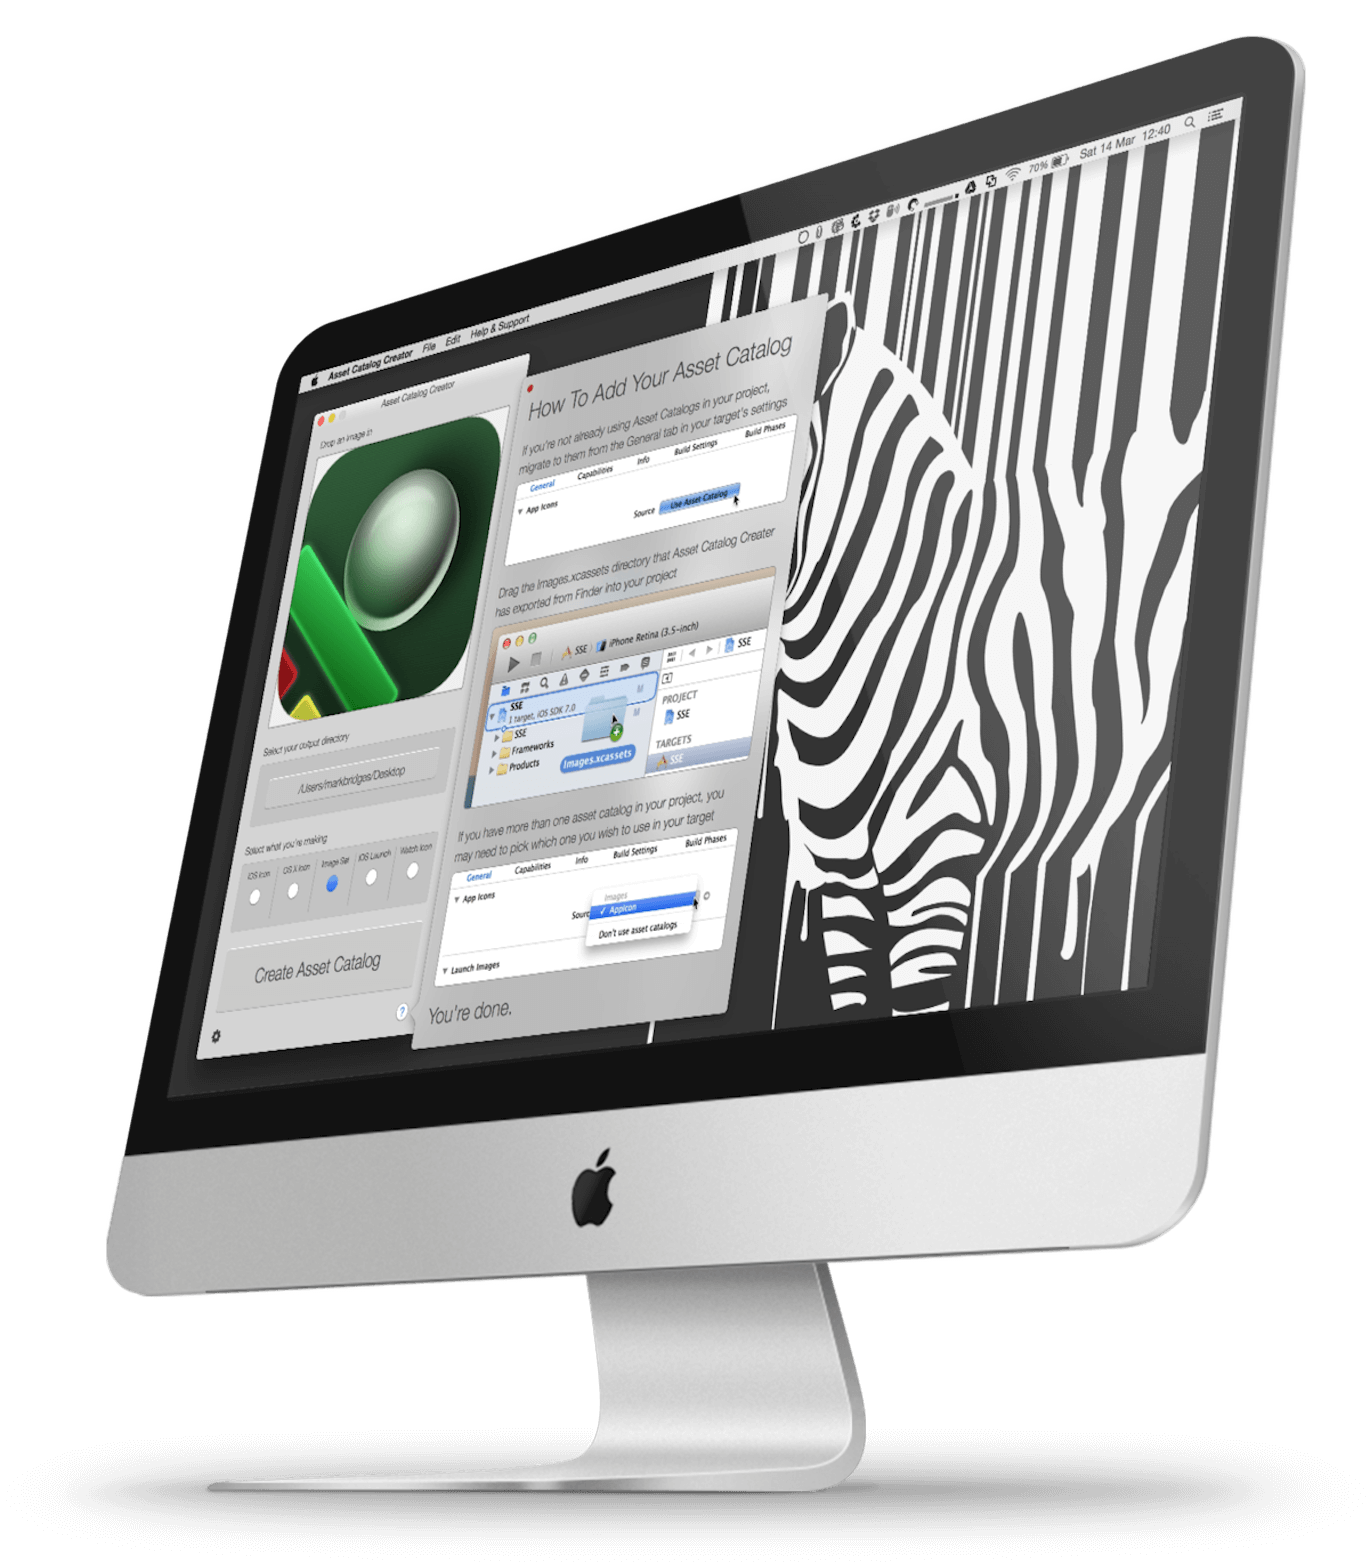 Asset Catalog Creator macOS app running on an Apple iMac with the help screen open